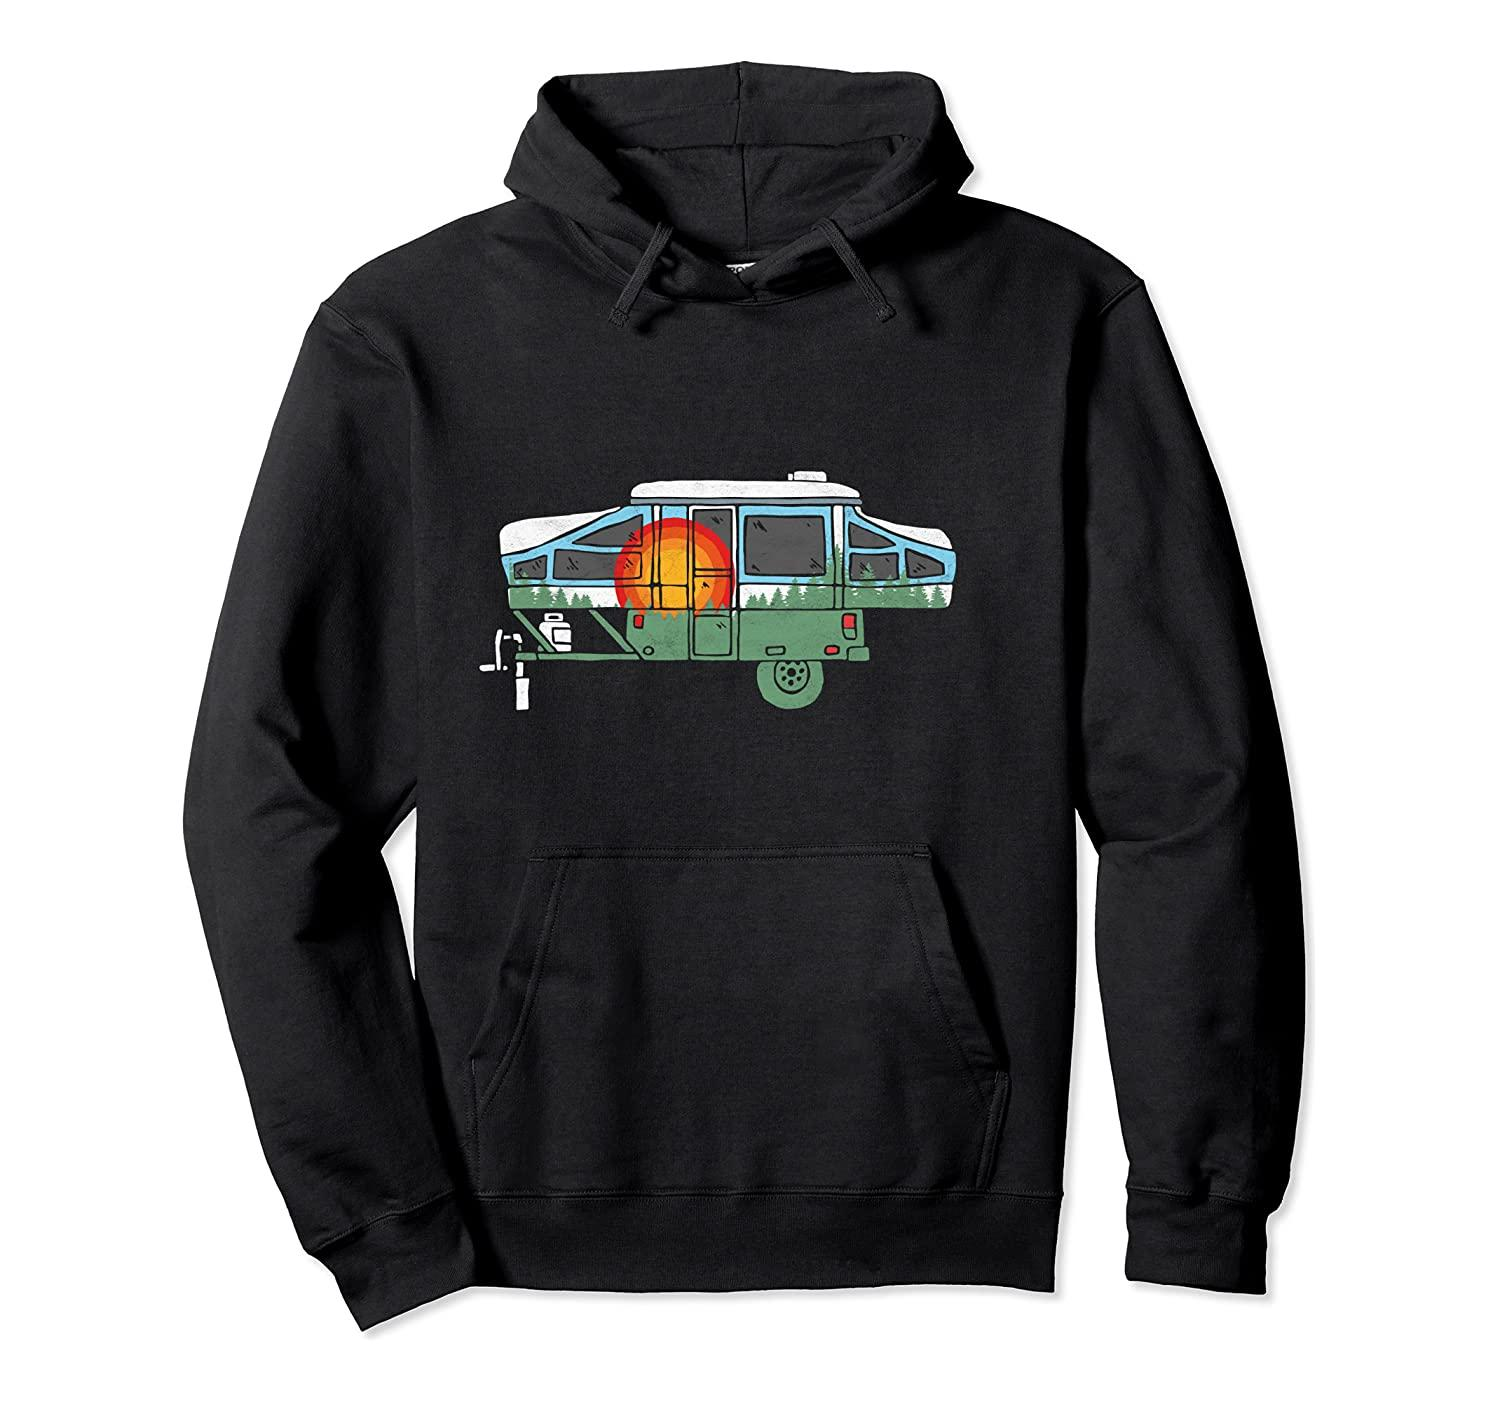 Retro Pop-Up Camper Vintage Nature Design con cappuccio unisex S-5XL Nero / Grigio / Navy / Royal Blue / Scuro Heather